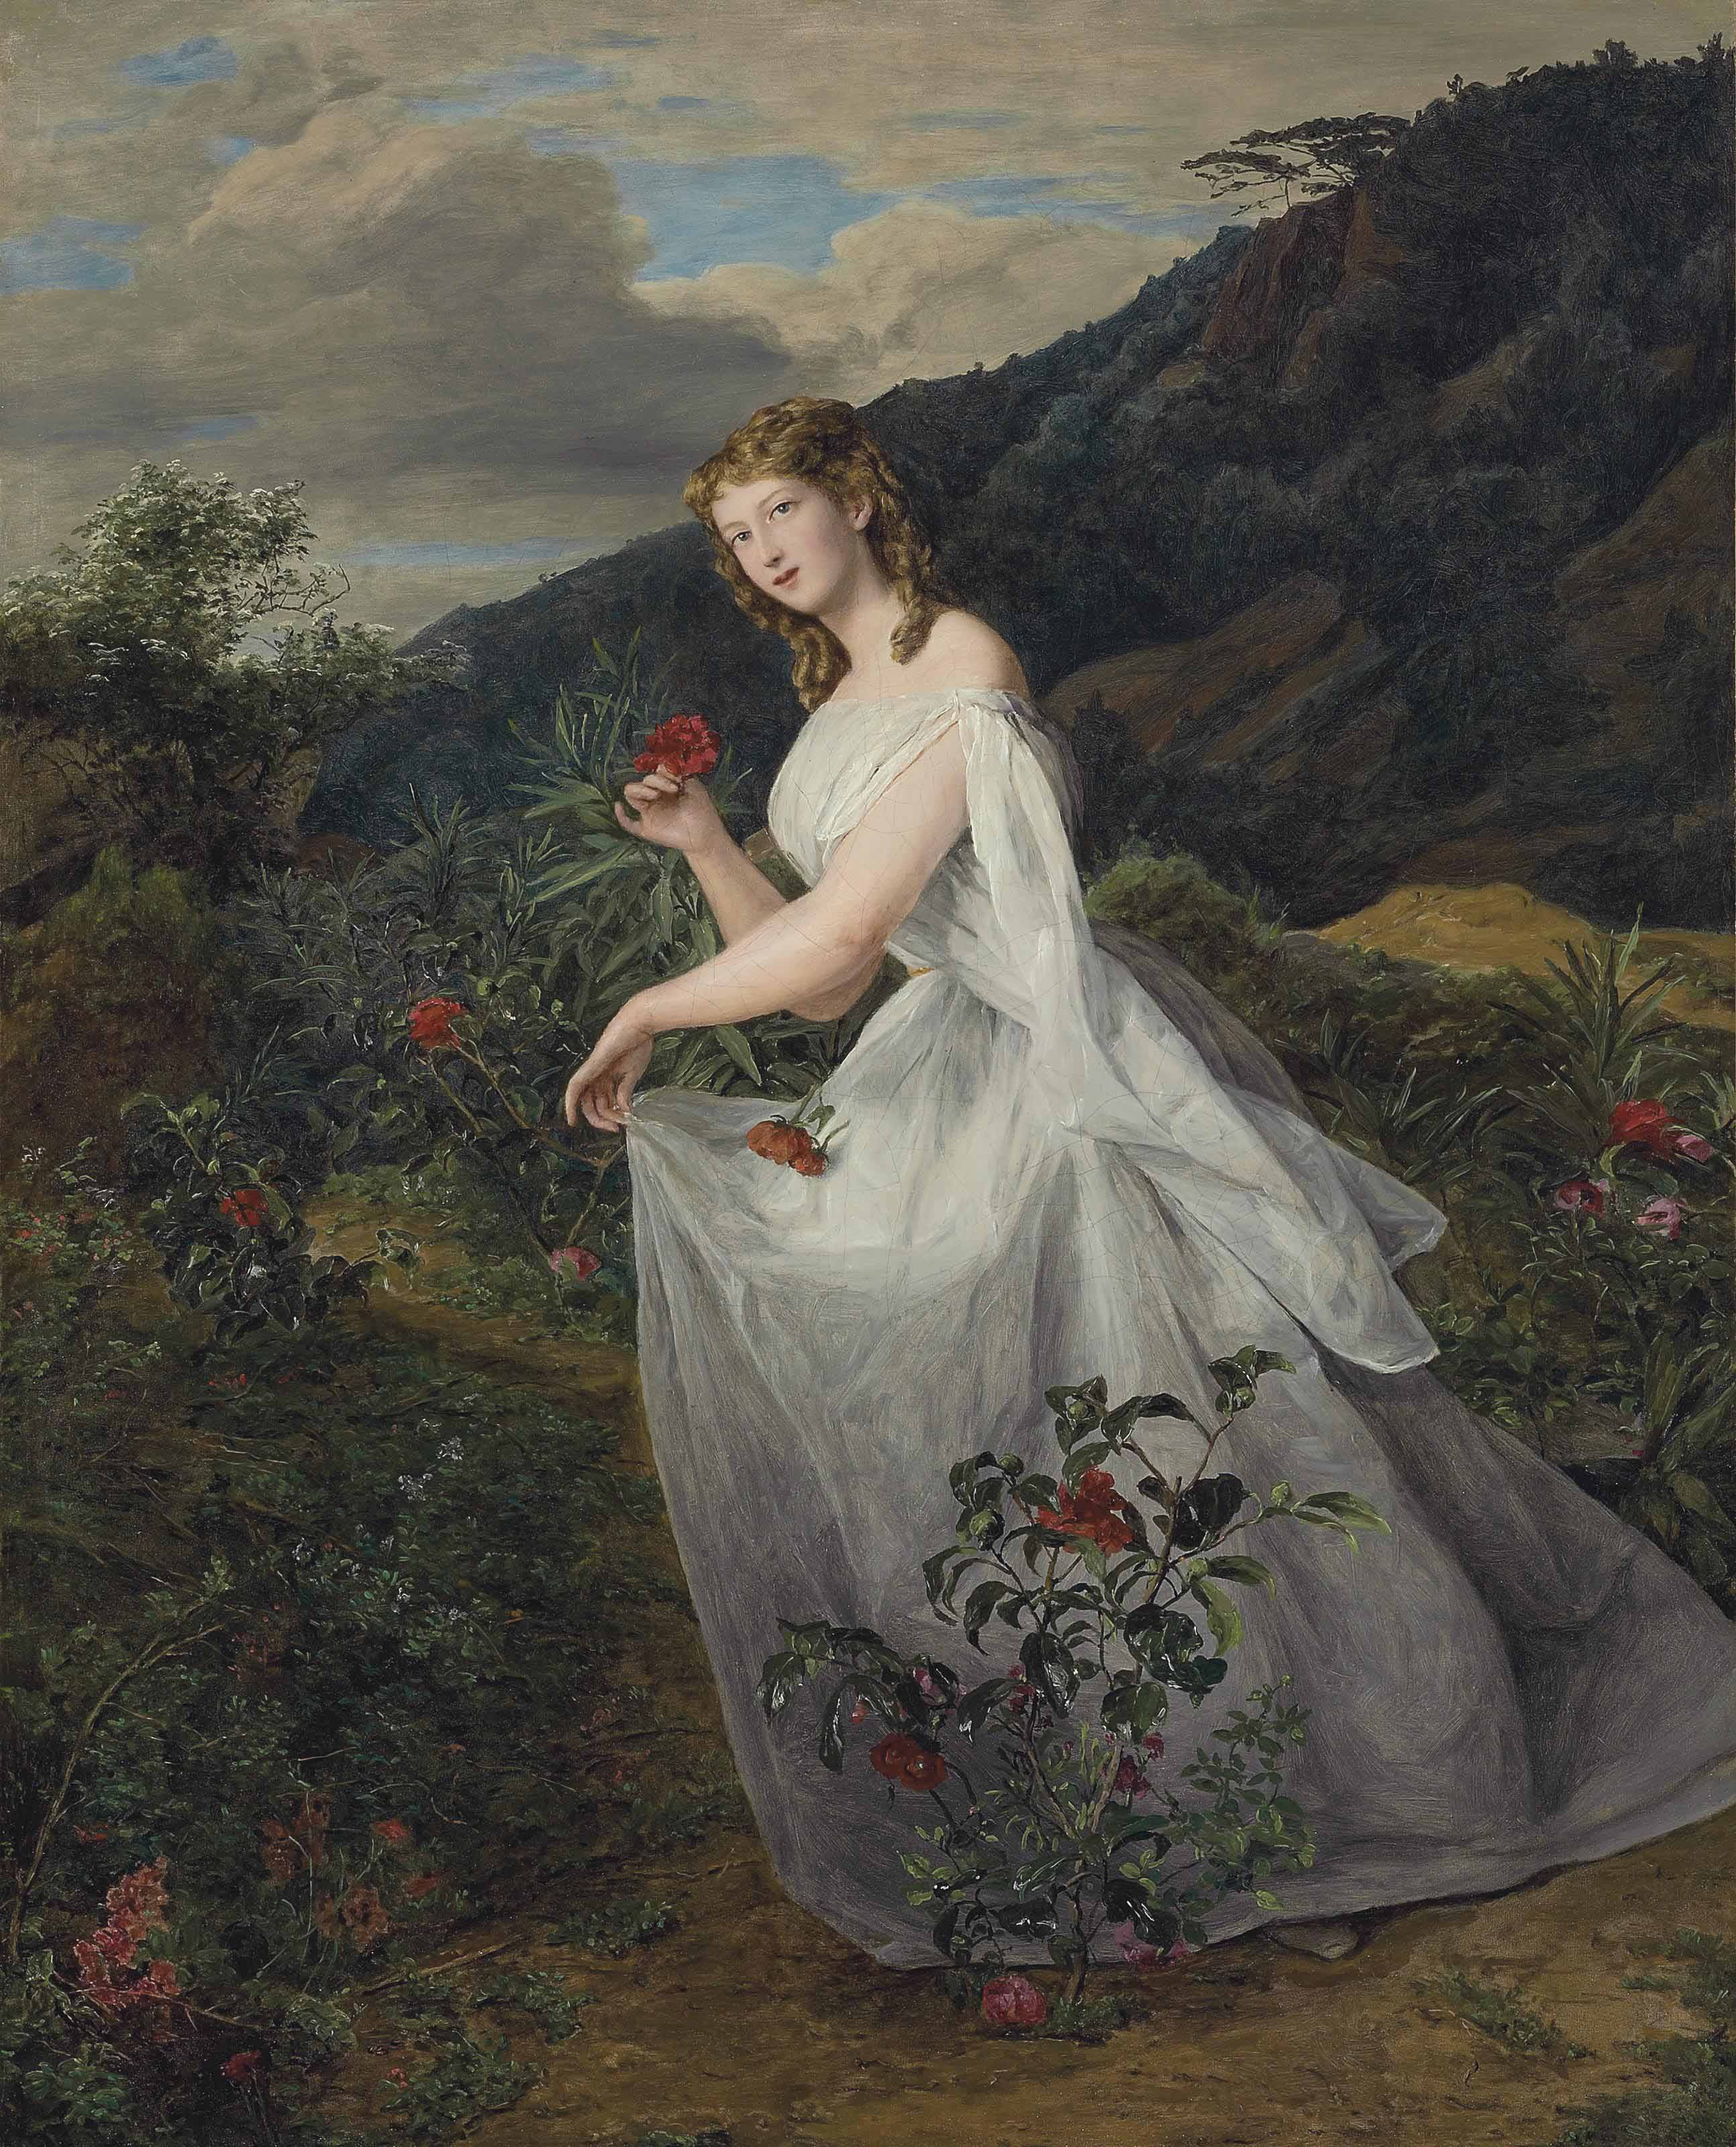 Young lady in a white dress